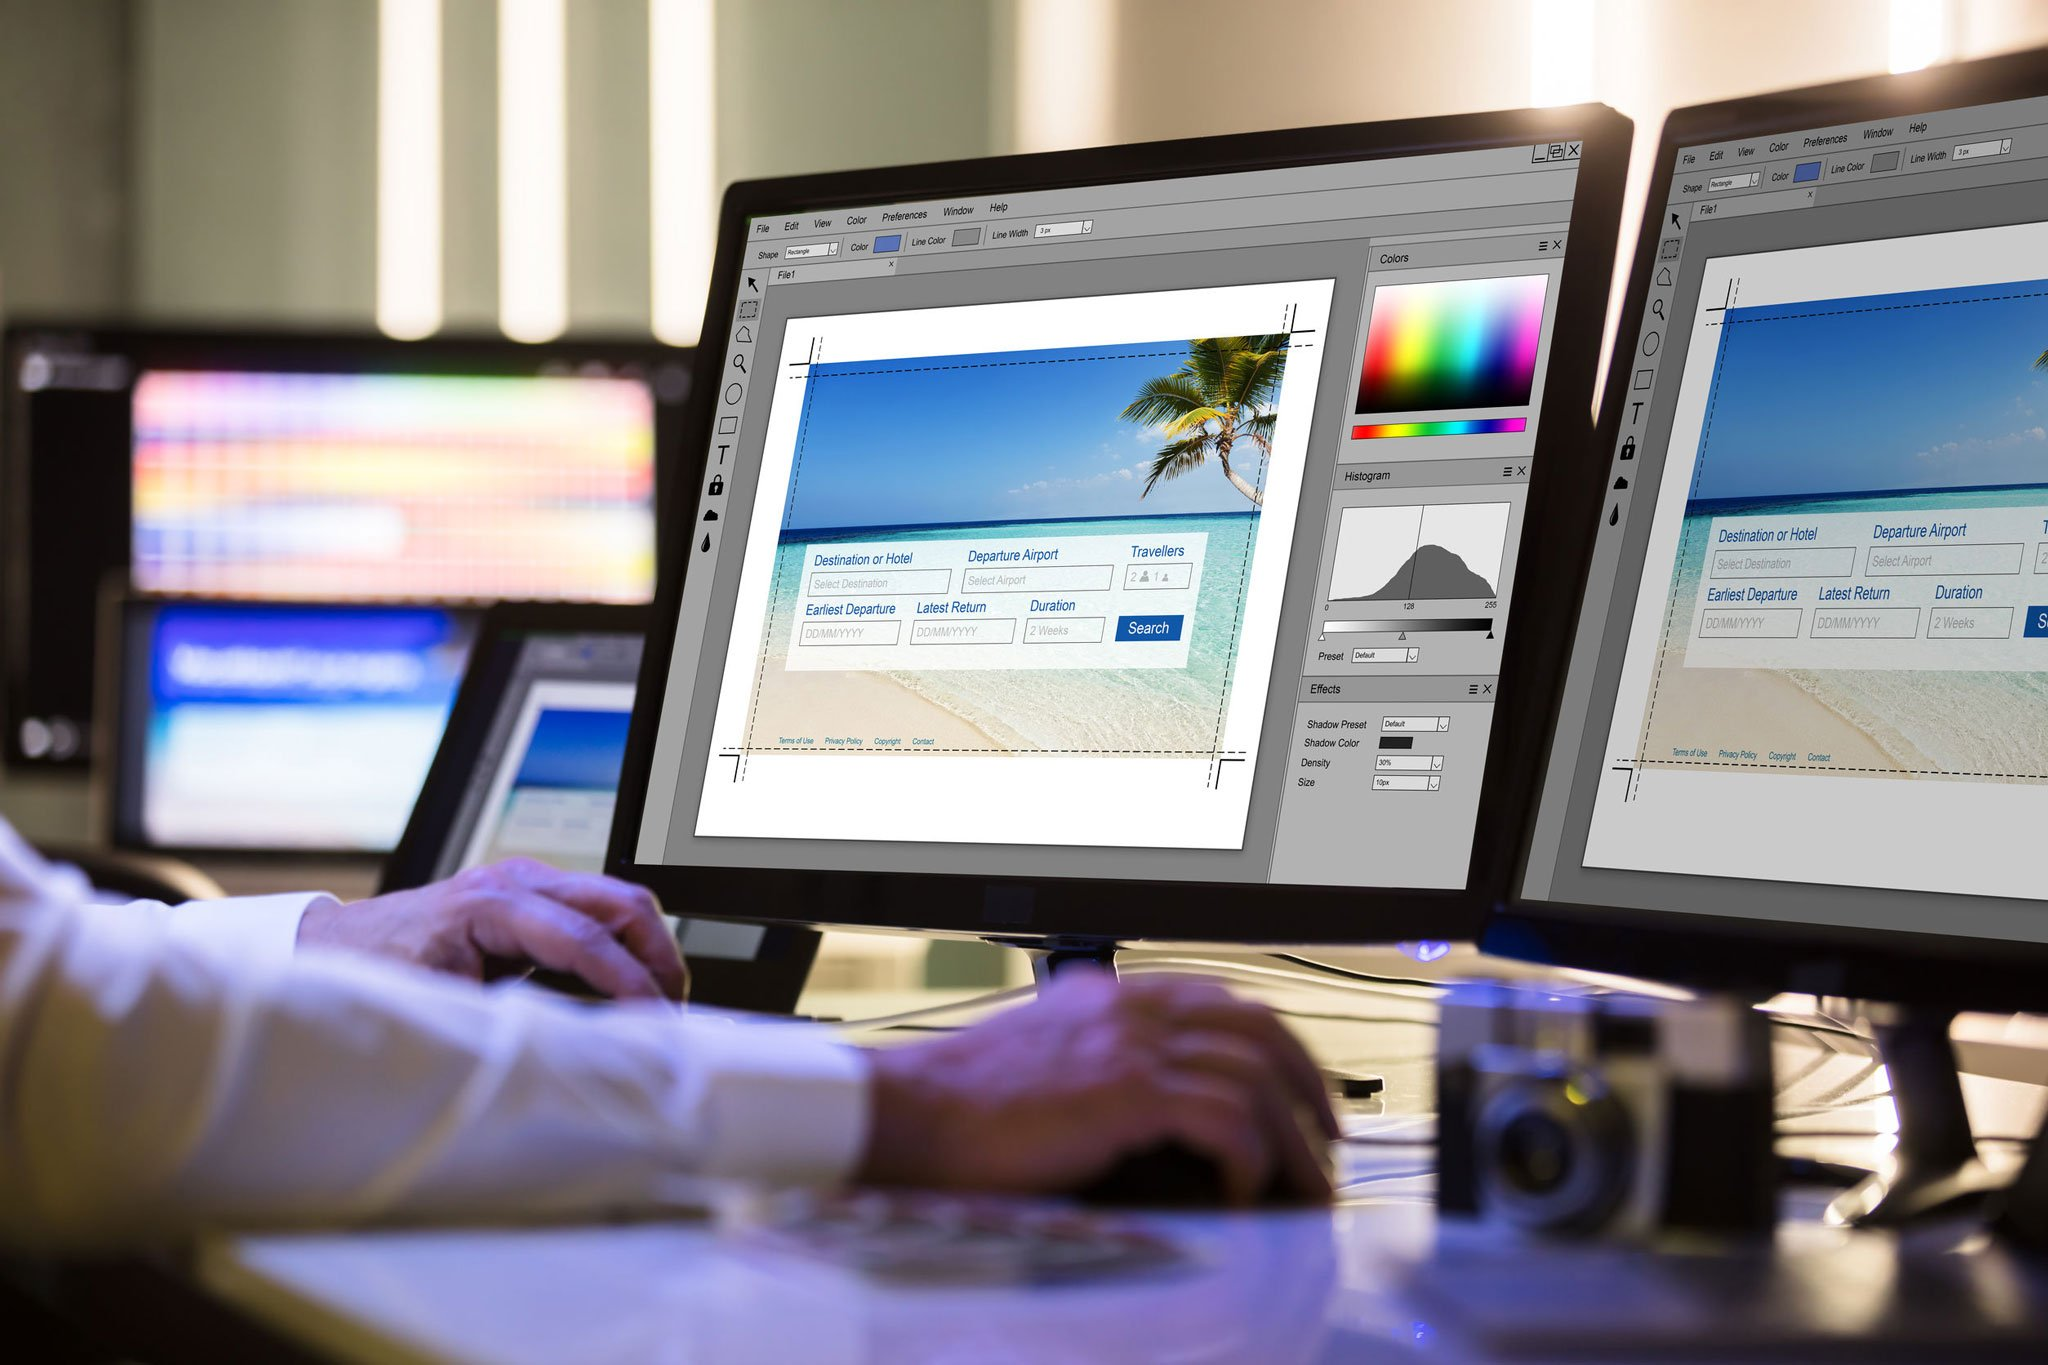 Picture of a graphic designer working on image optimization